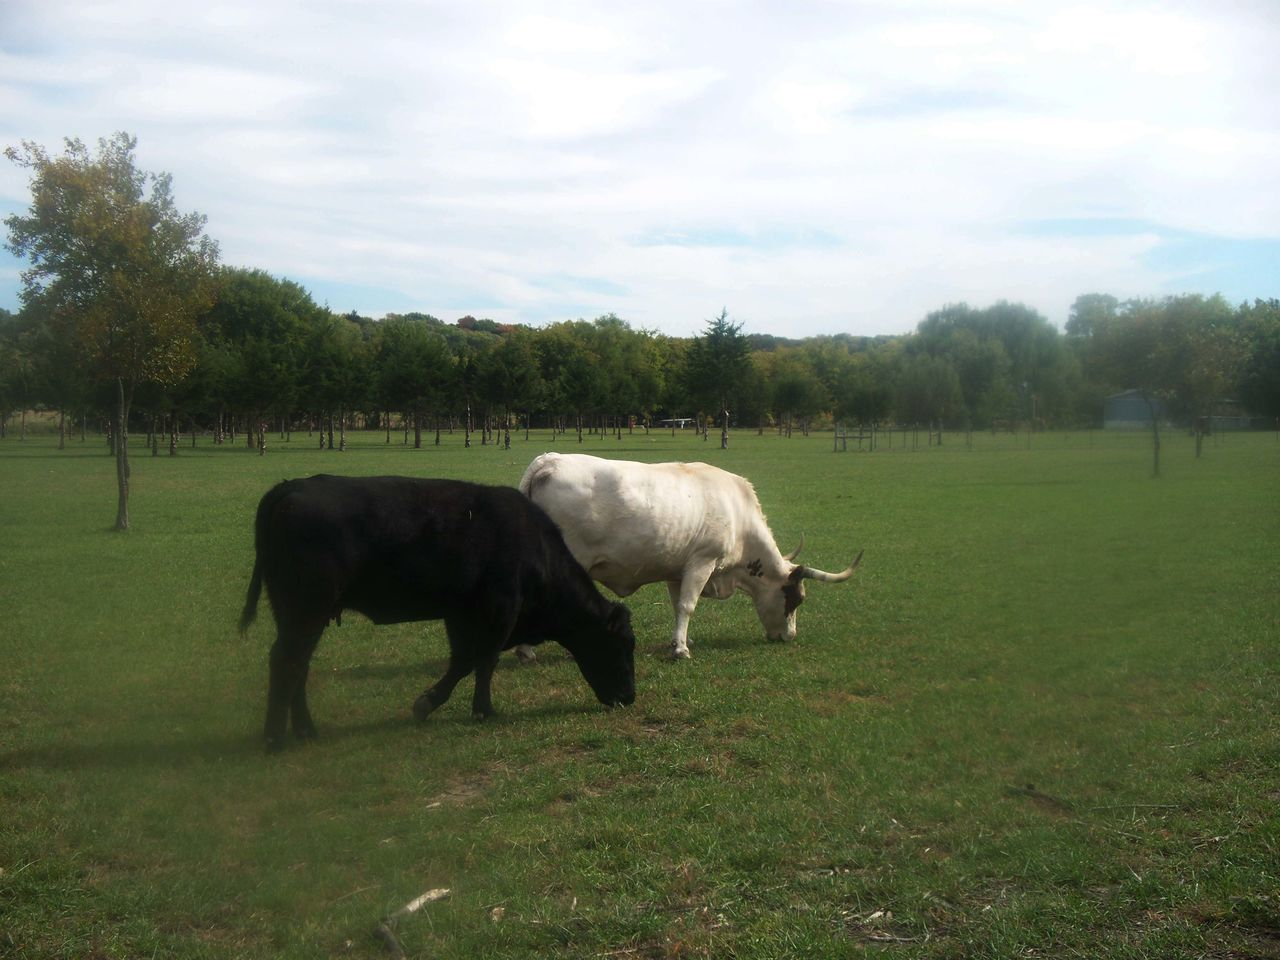 grass, field, nature, cow, livestock, grazing, domestic animals, animal themes, tree, cattle, landscape, mammal, pasture, sky, no people, outdoors, day, beauty in nature